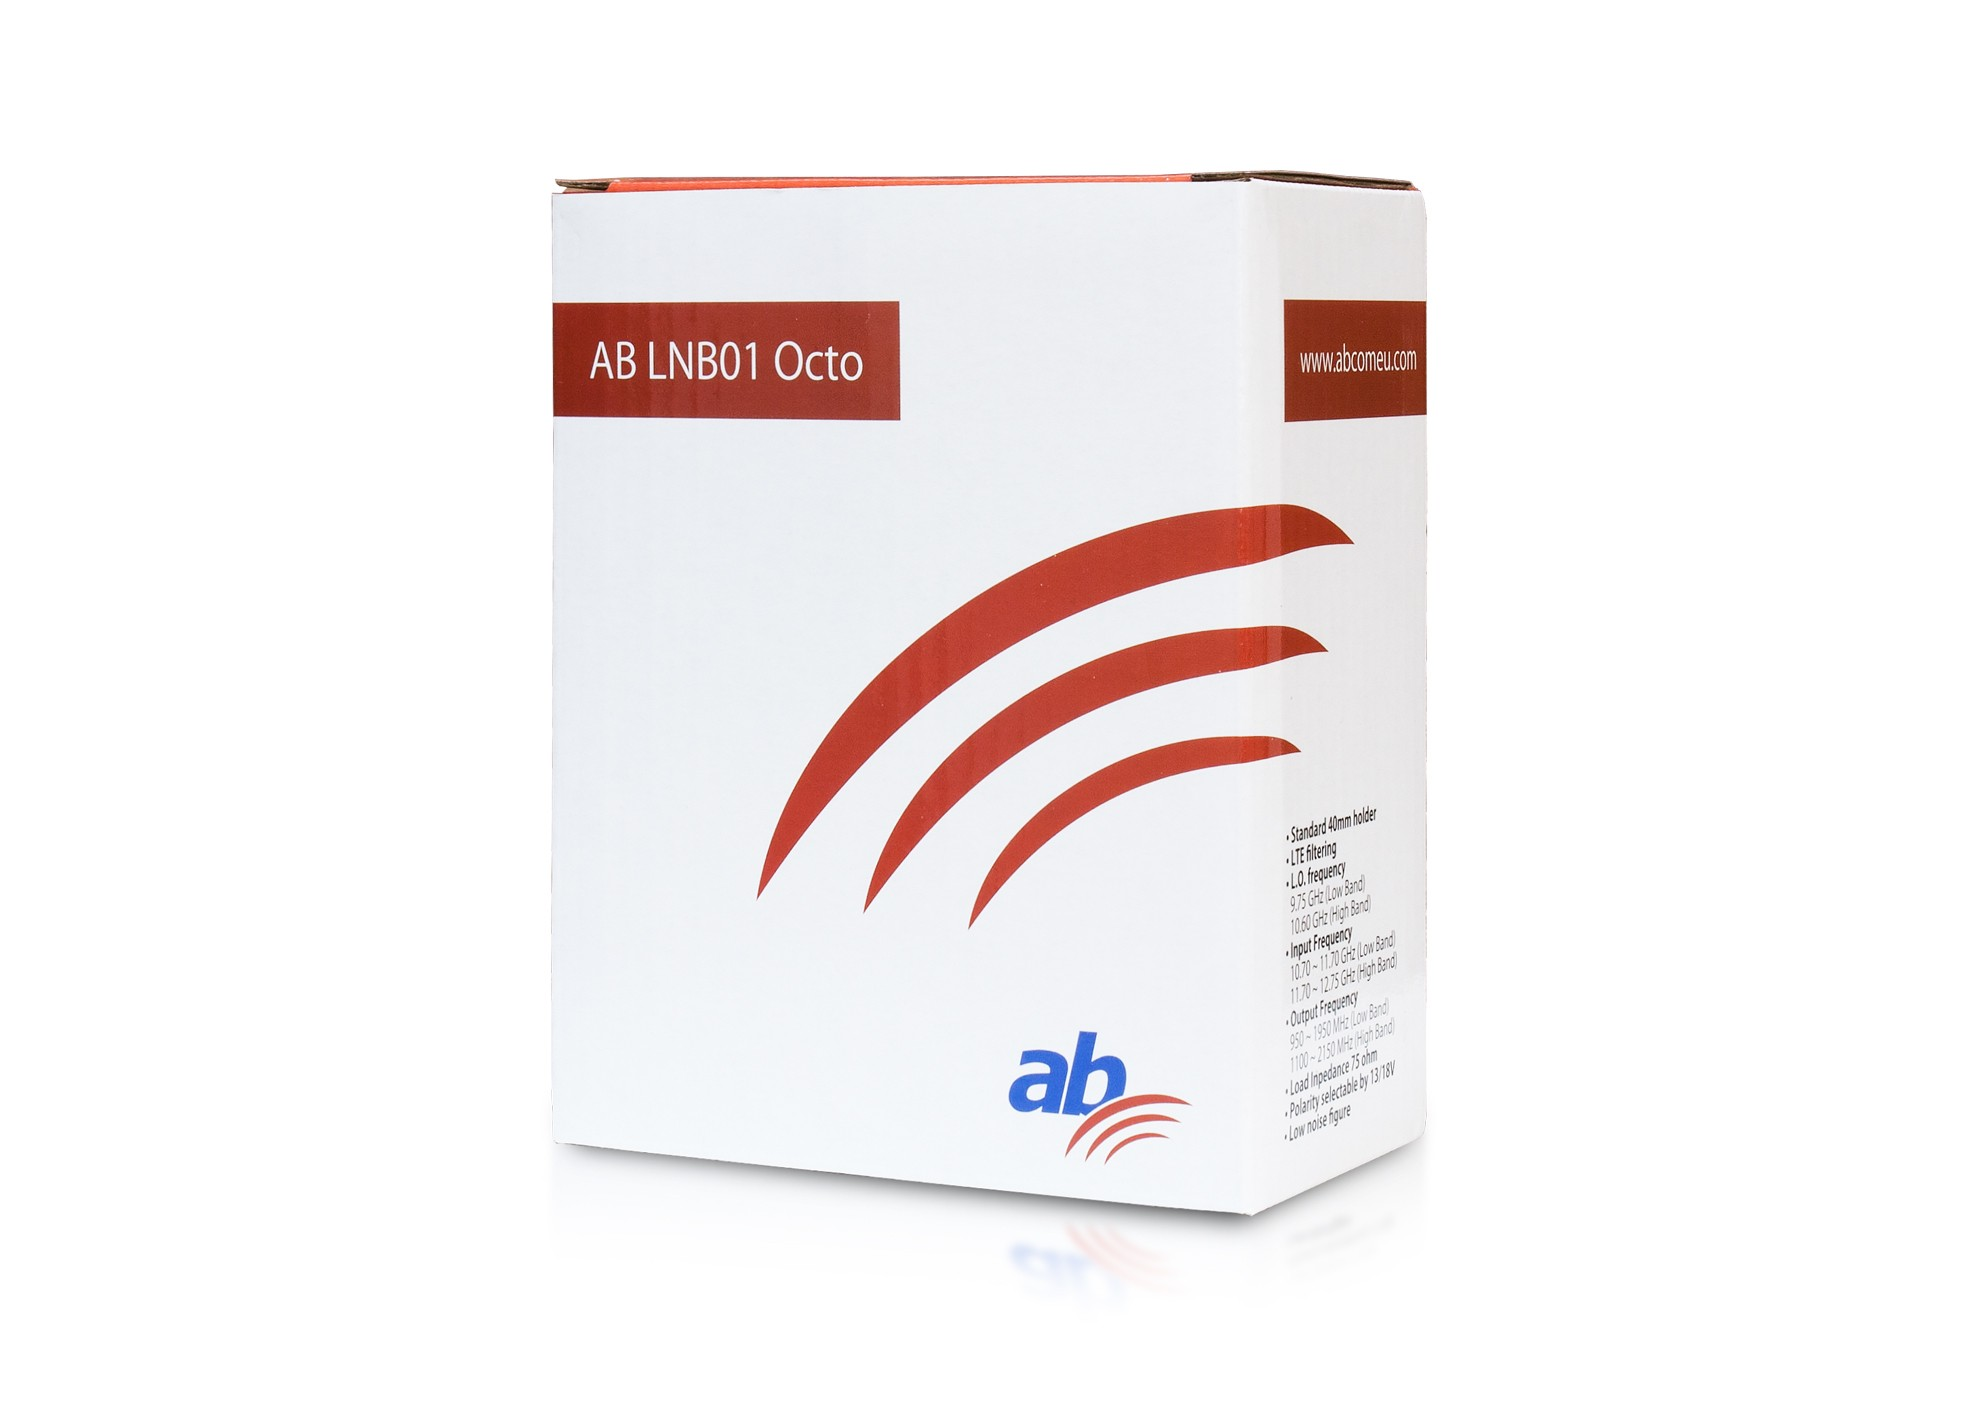 AB LNB01 Octo Red Edition